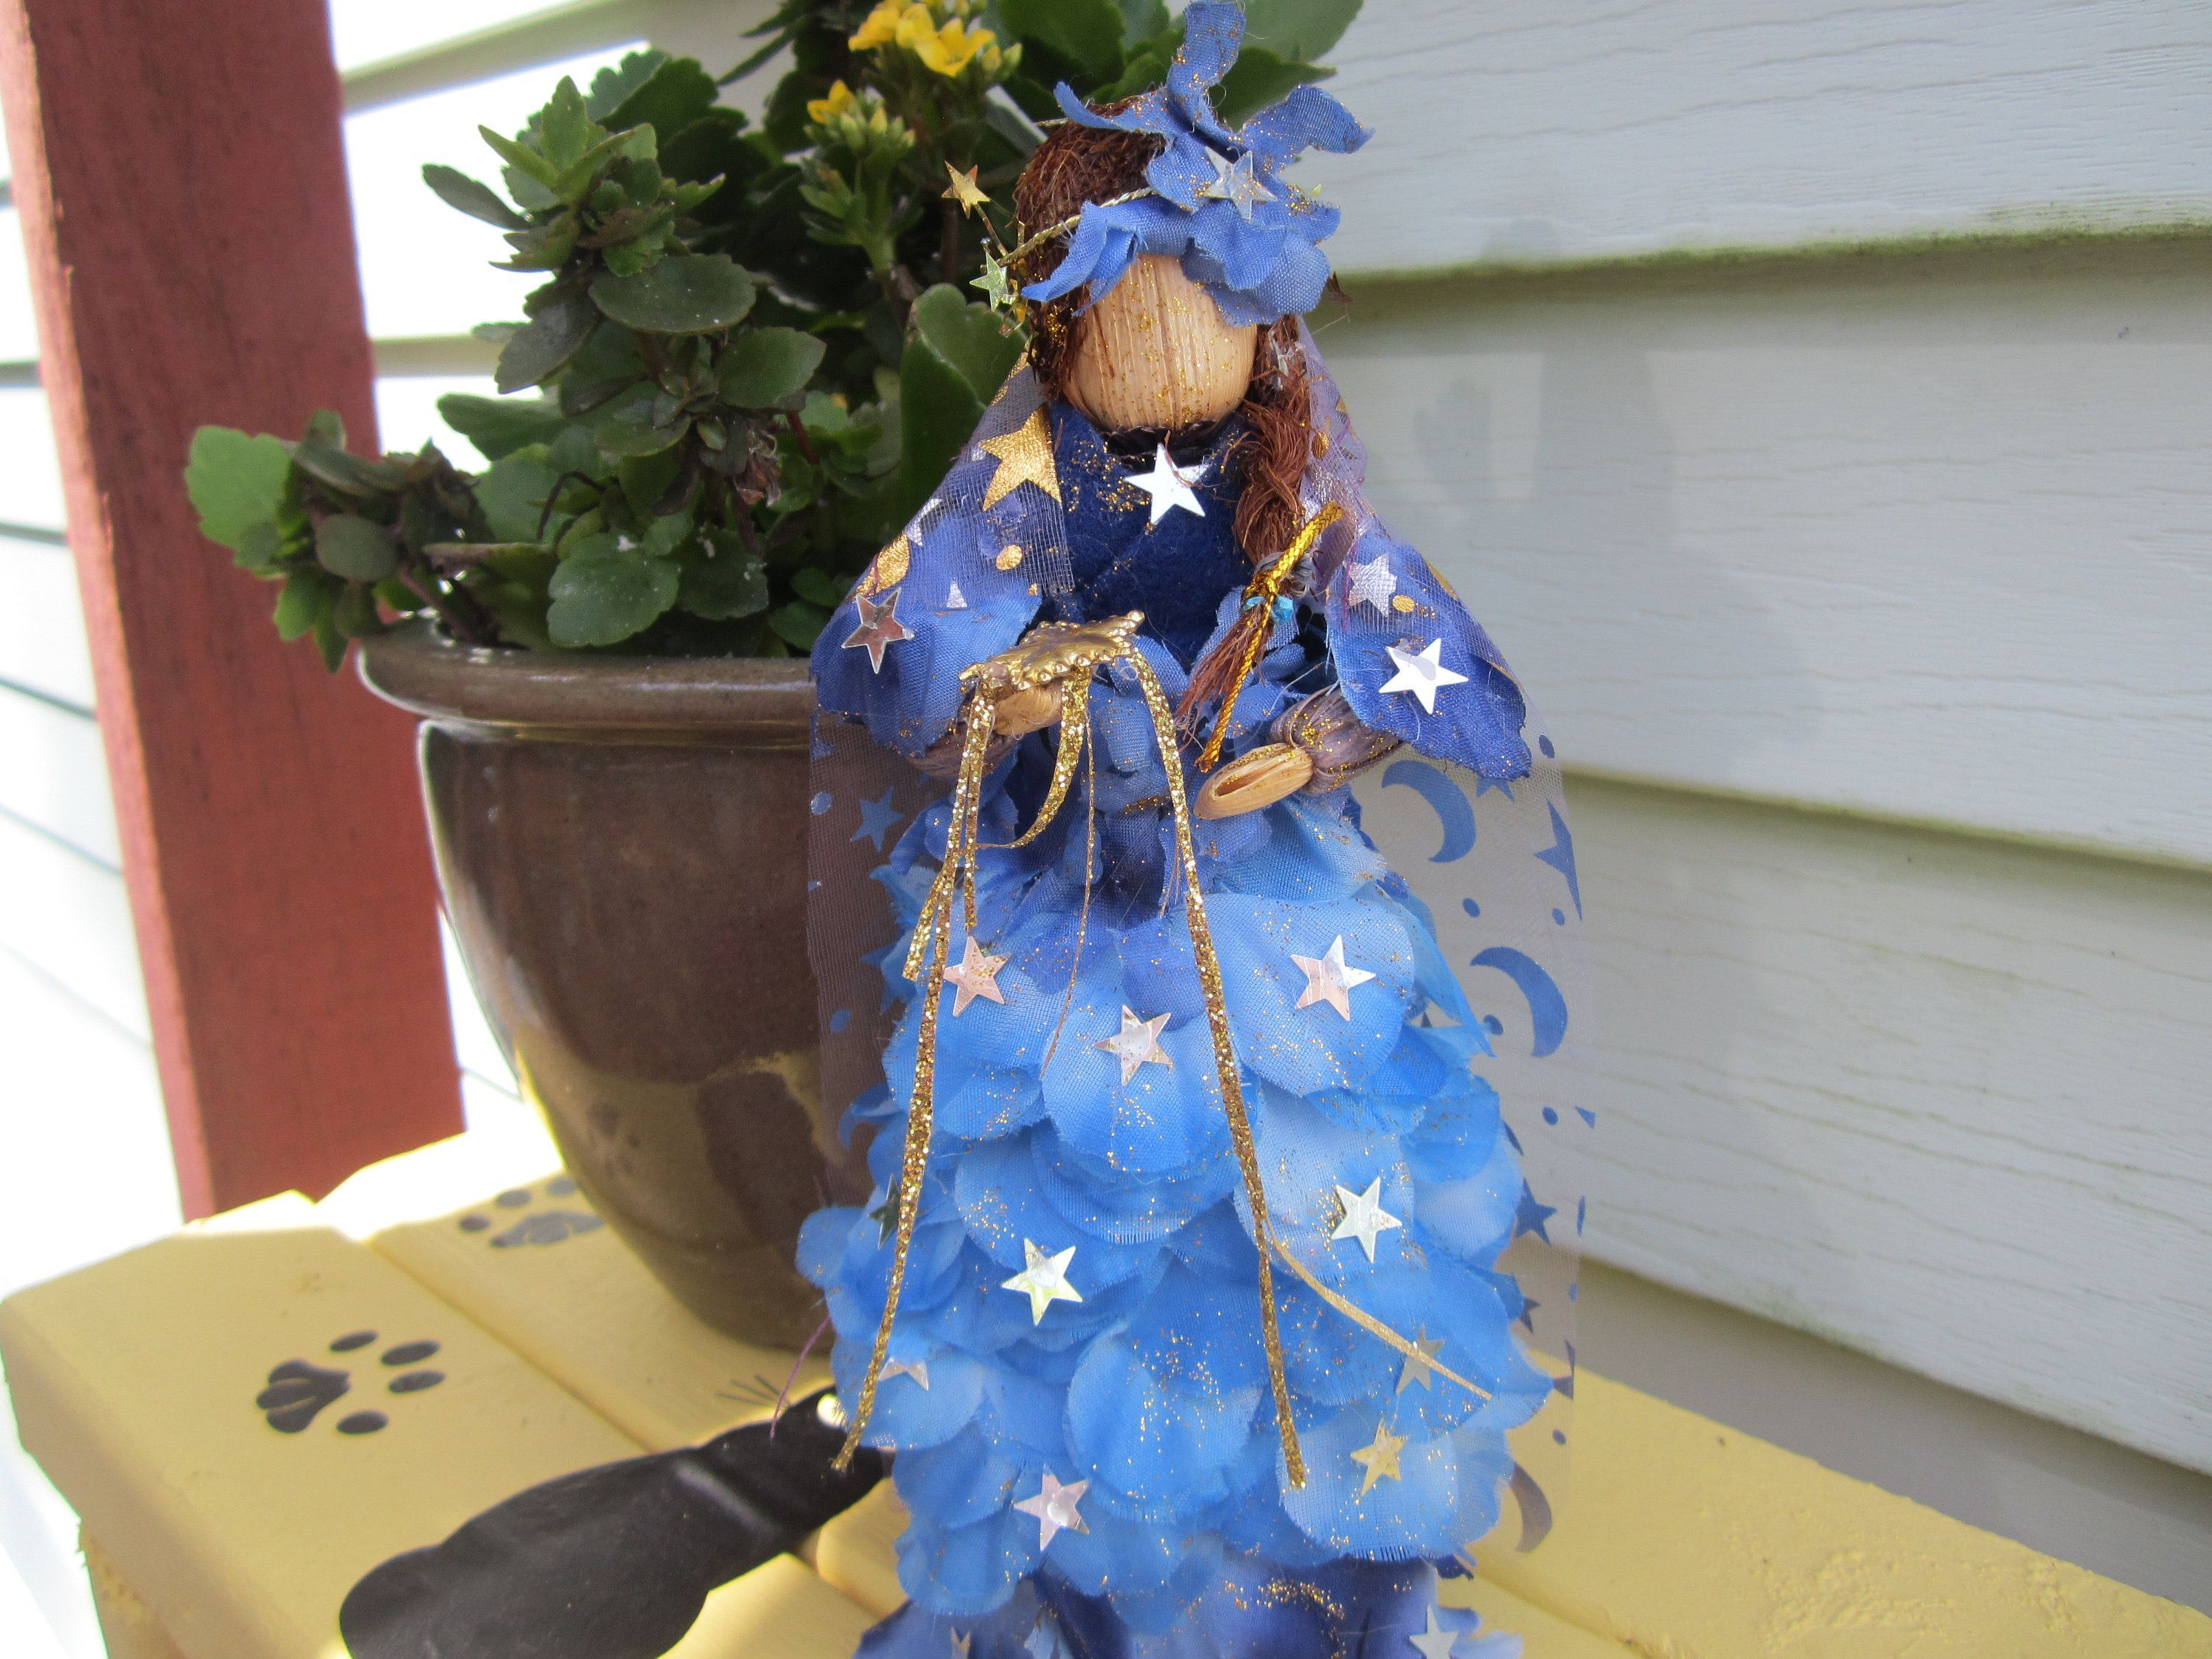 Goddess of the Shooting Stars, Altar Goddess, Corn Doll, Collectable Corn Doll Goddess, Astrology Goddess, Wiccan Decor, Greek Goddess #wiccandecor Goddess of the Shooting Stars, Altar Goddess, Corn Doll, Collectable Corn Doll Goddess, Astrology Goddess, Wiccan Decor, Greek Goddess #wiccandecor Goddess of the Shooting Stars, Altar Goddess, Corn Doll, Collectable Corn Doll Goddess, Astrology Goddess, Wiccan Decor, Greek Goddess #wiccandecor Goddess of the Shooting Stars, Altar Goddess, Corn Doll, #wiccandecor